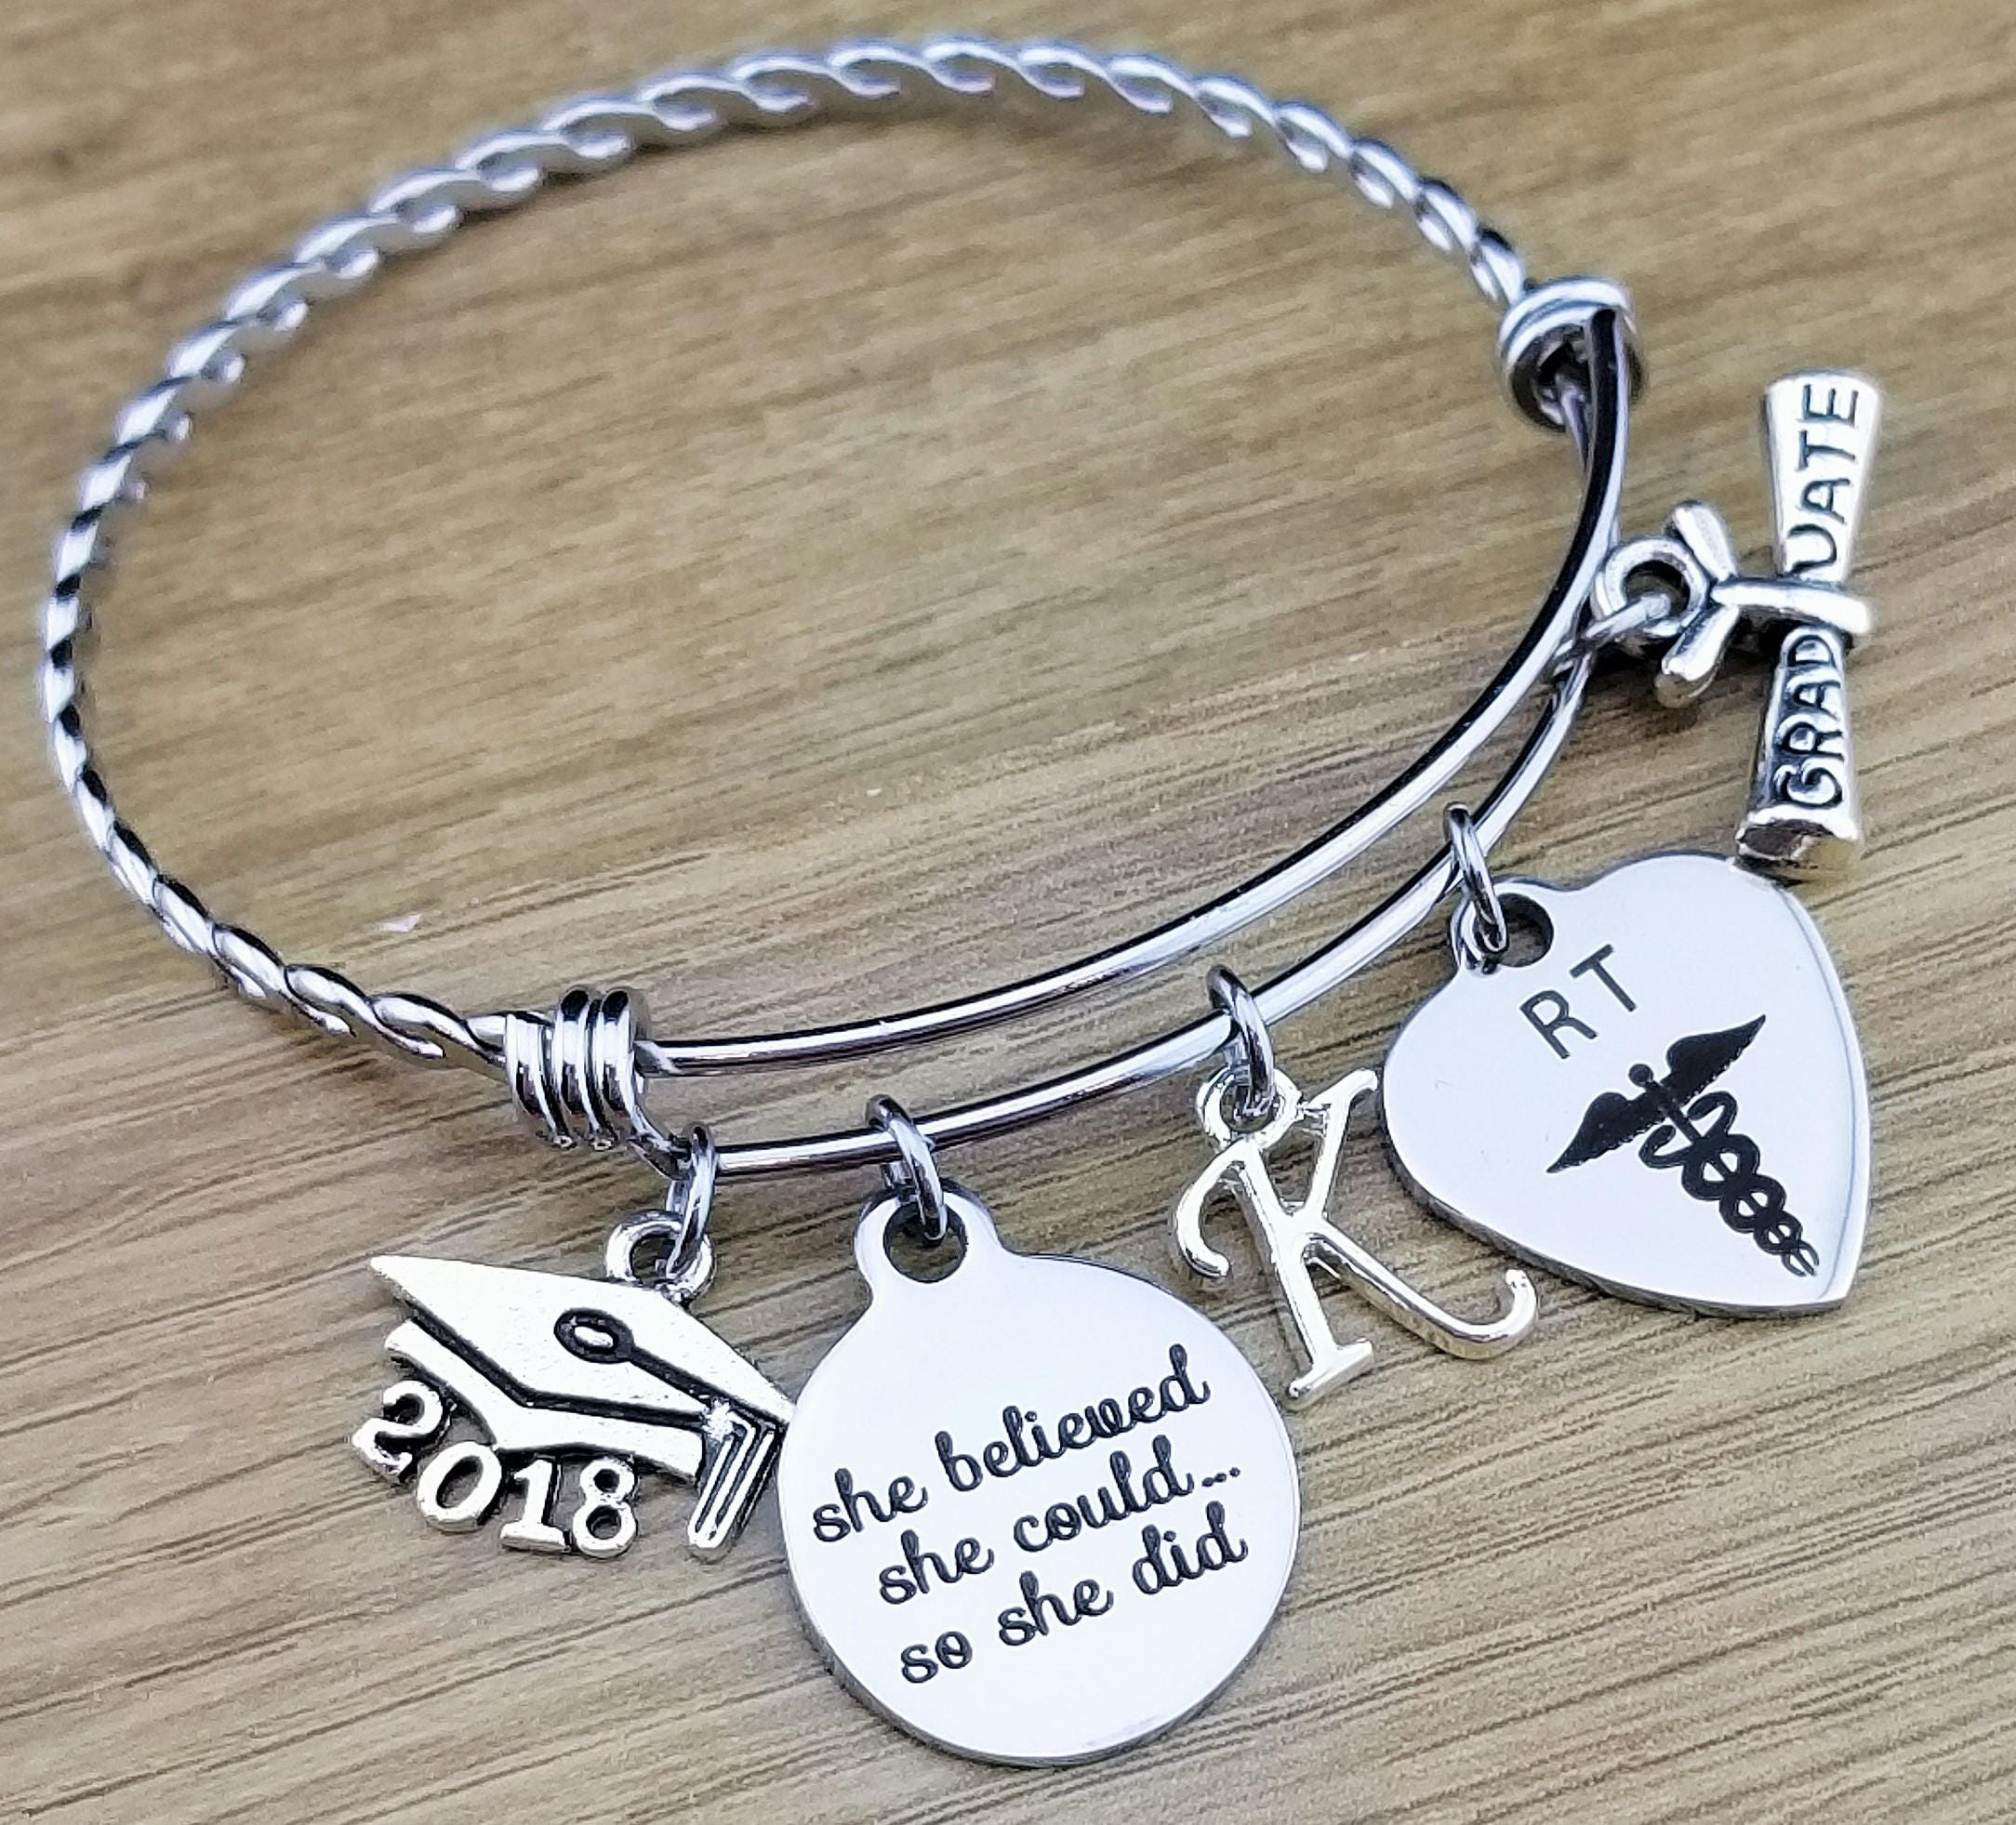 respiratory therapist gifts graduation gift for her graduation gift